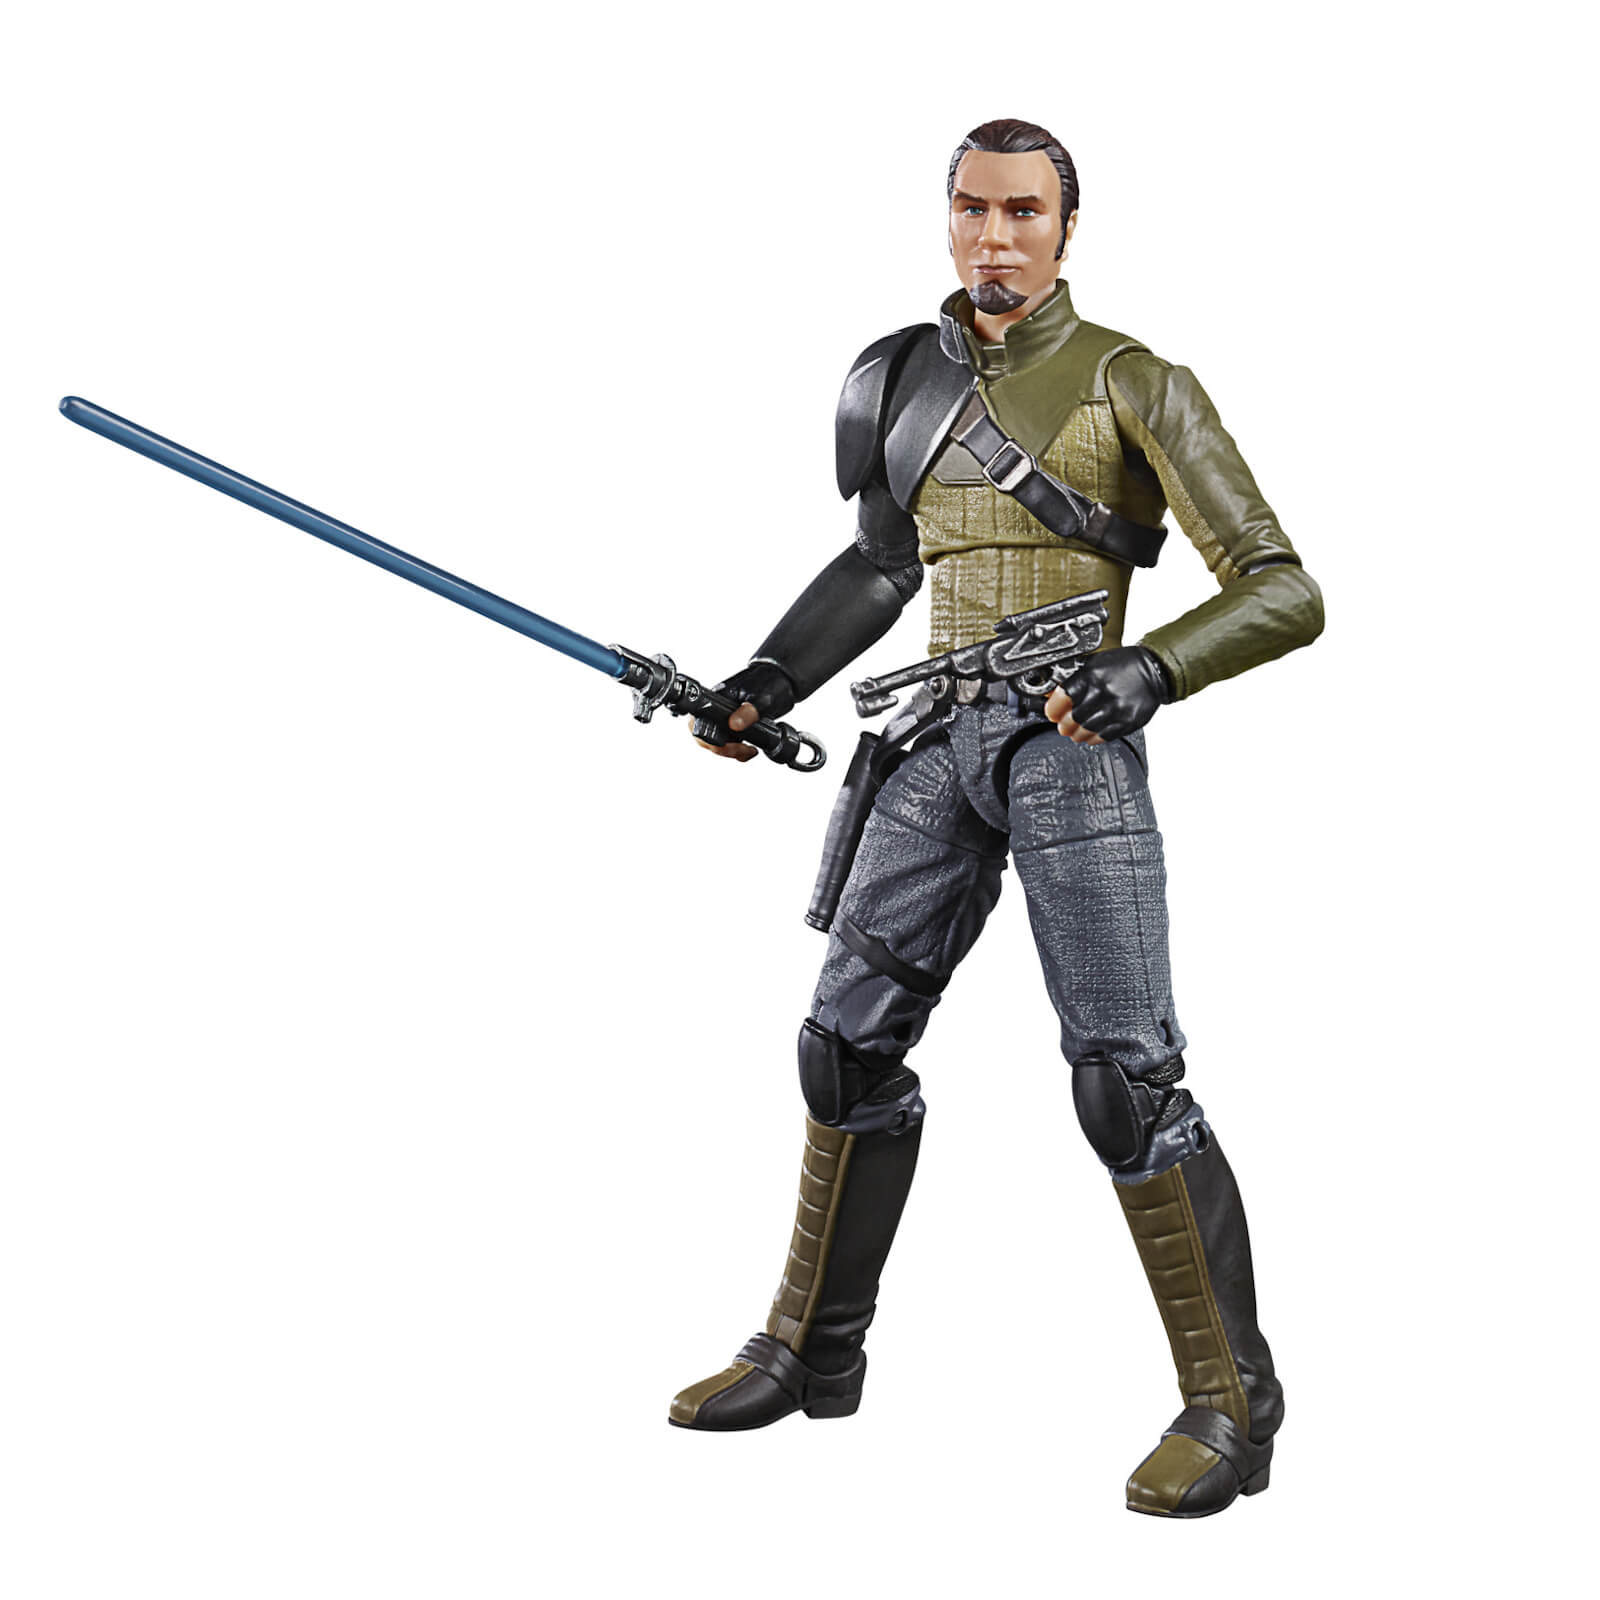 Hasbro Star Wars Black Series Rebels Kanan Jarrus 6-Inch Scale Figure